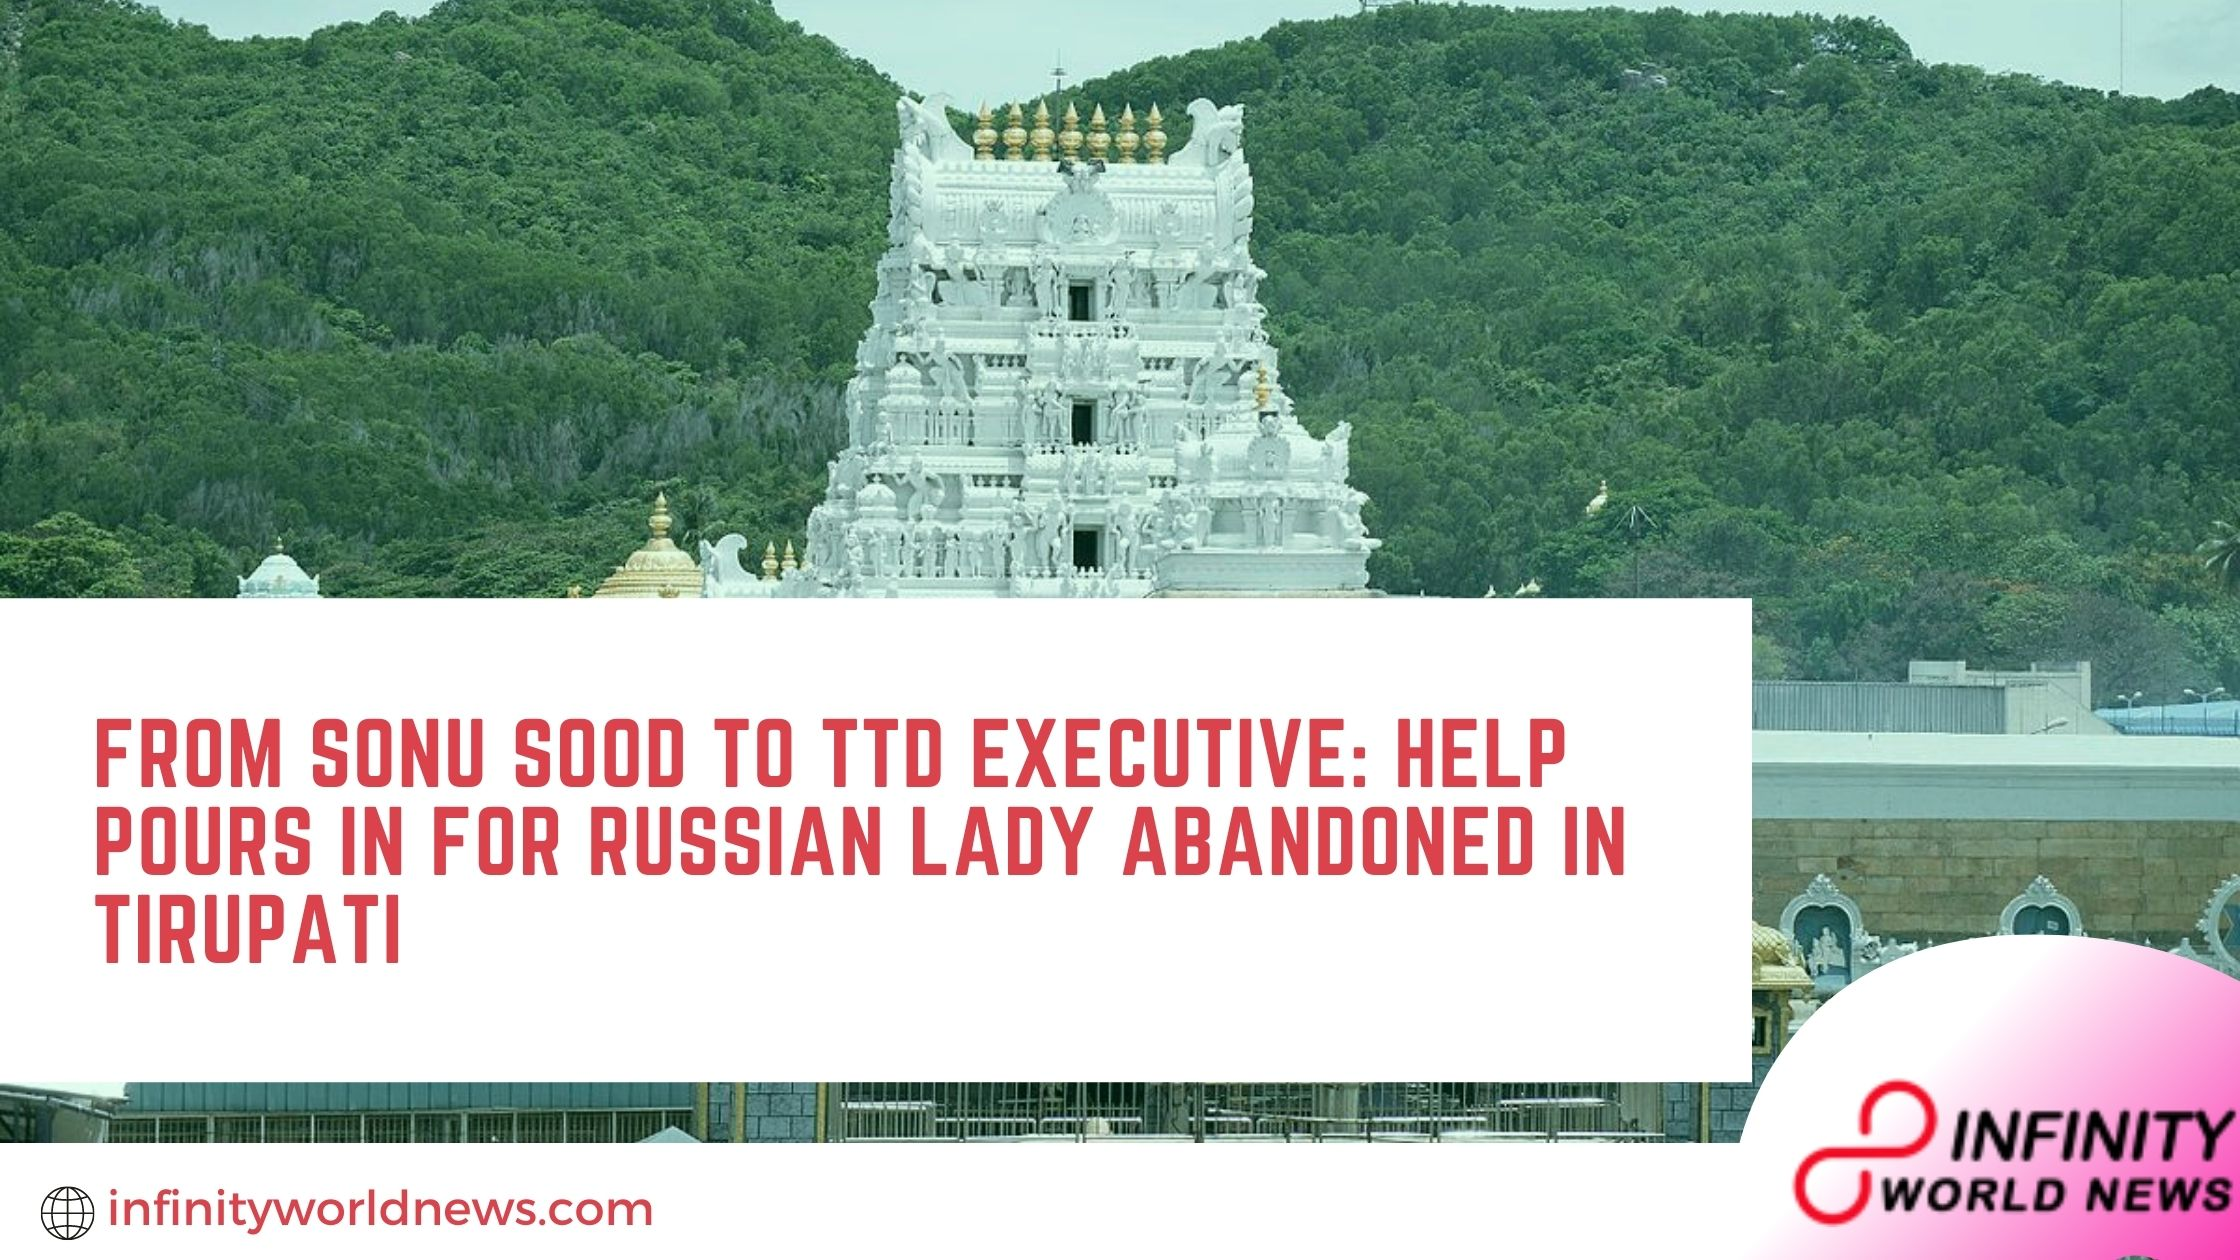 From Sonu Sood to TTD executive_ Help pours in for Russian lady abandoned in Tirupati